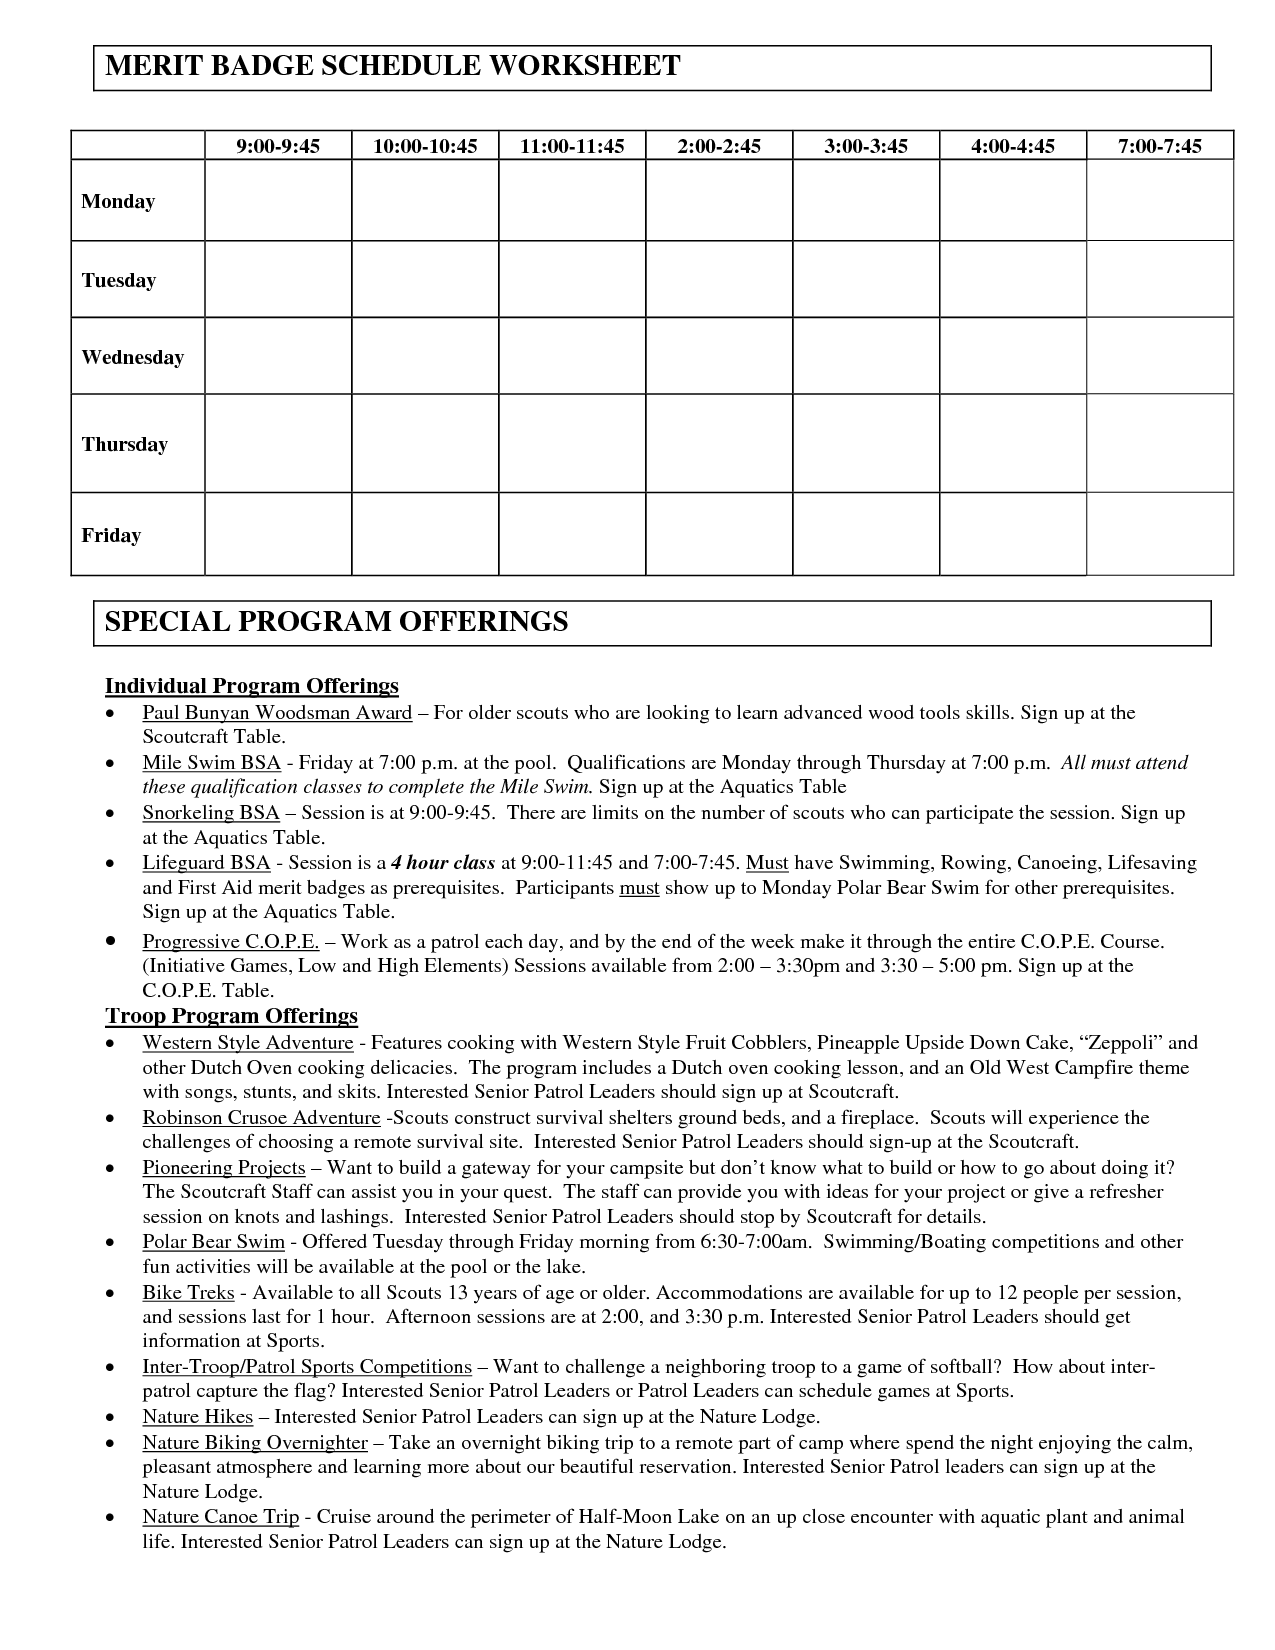 Merit Badges Worksheet